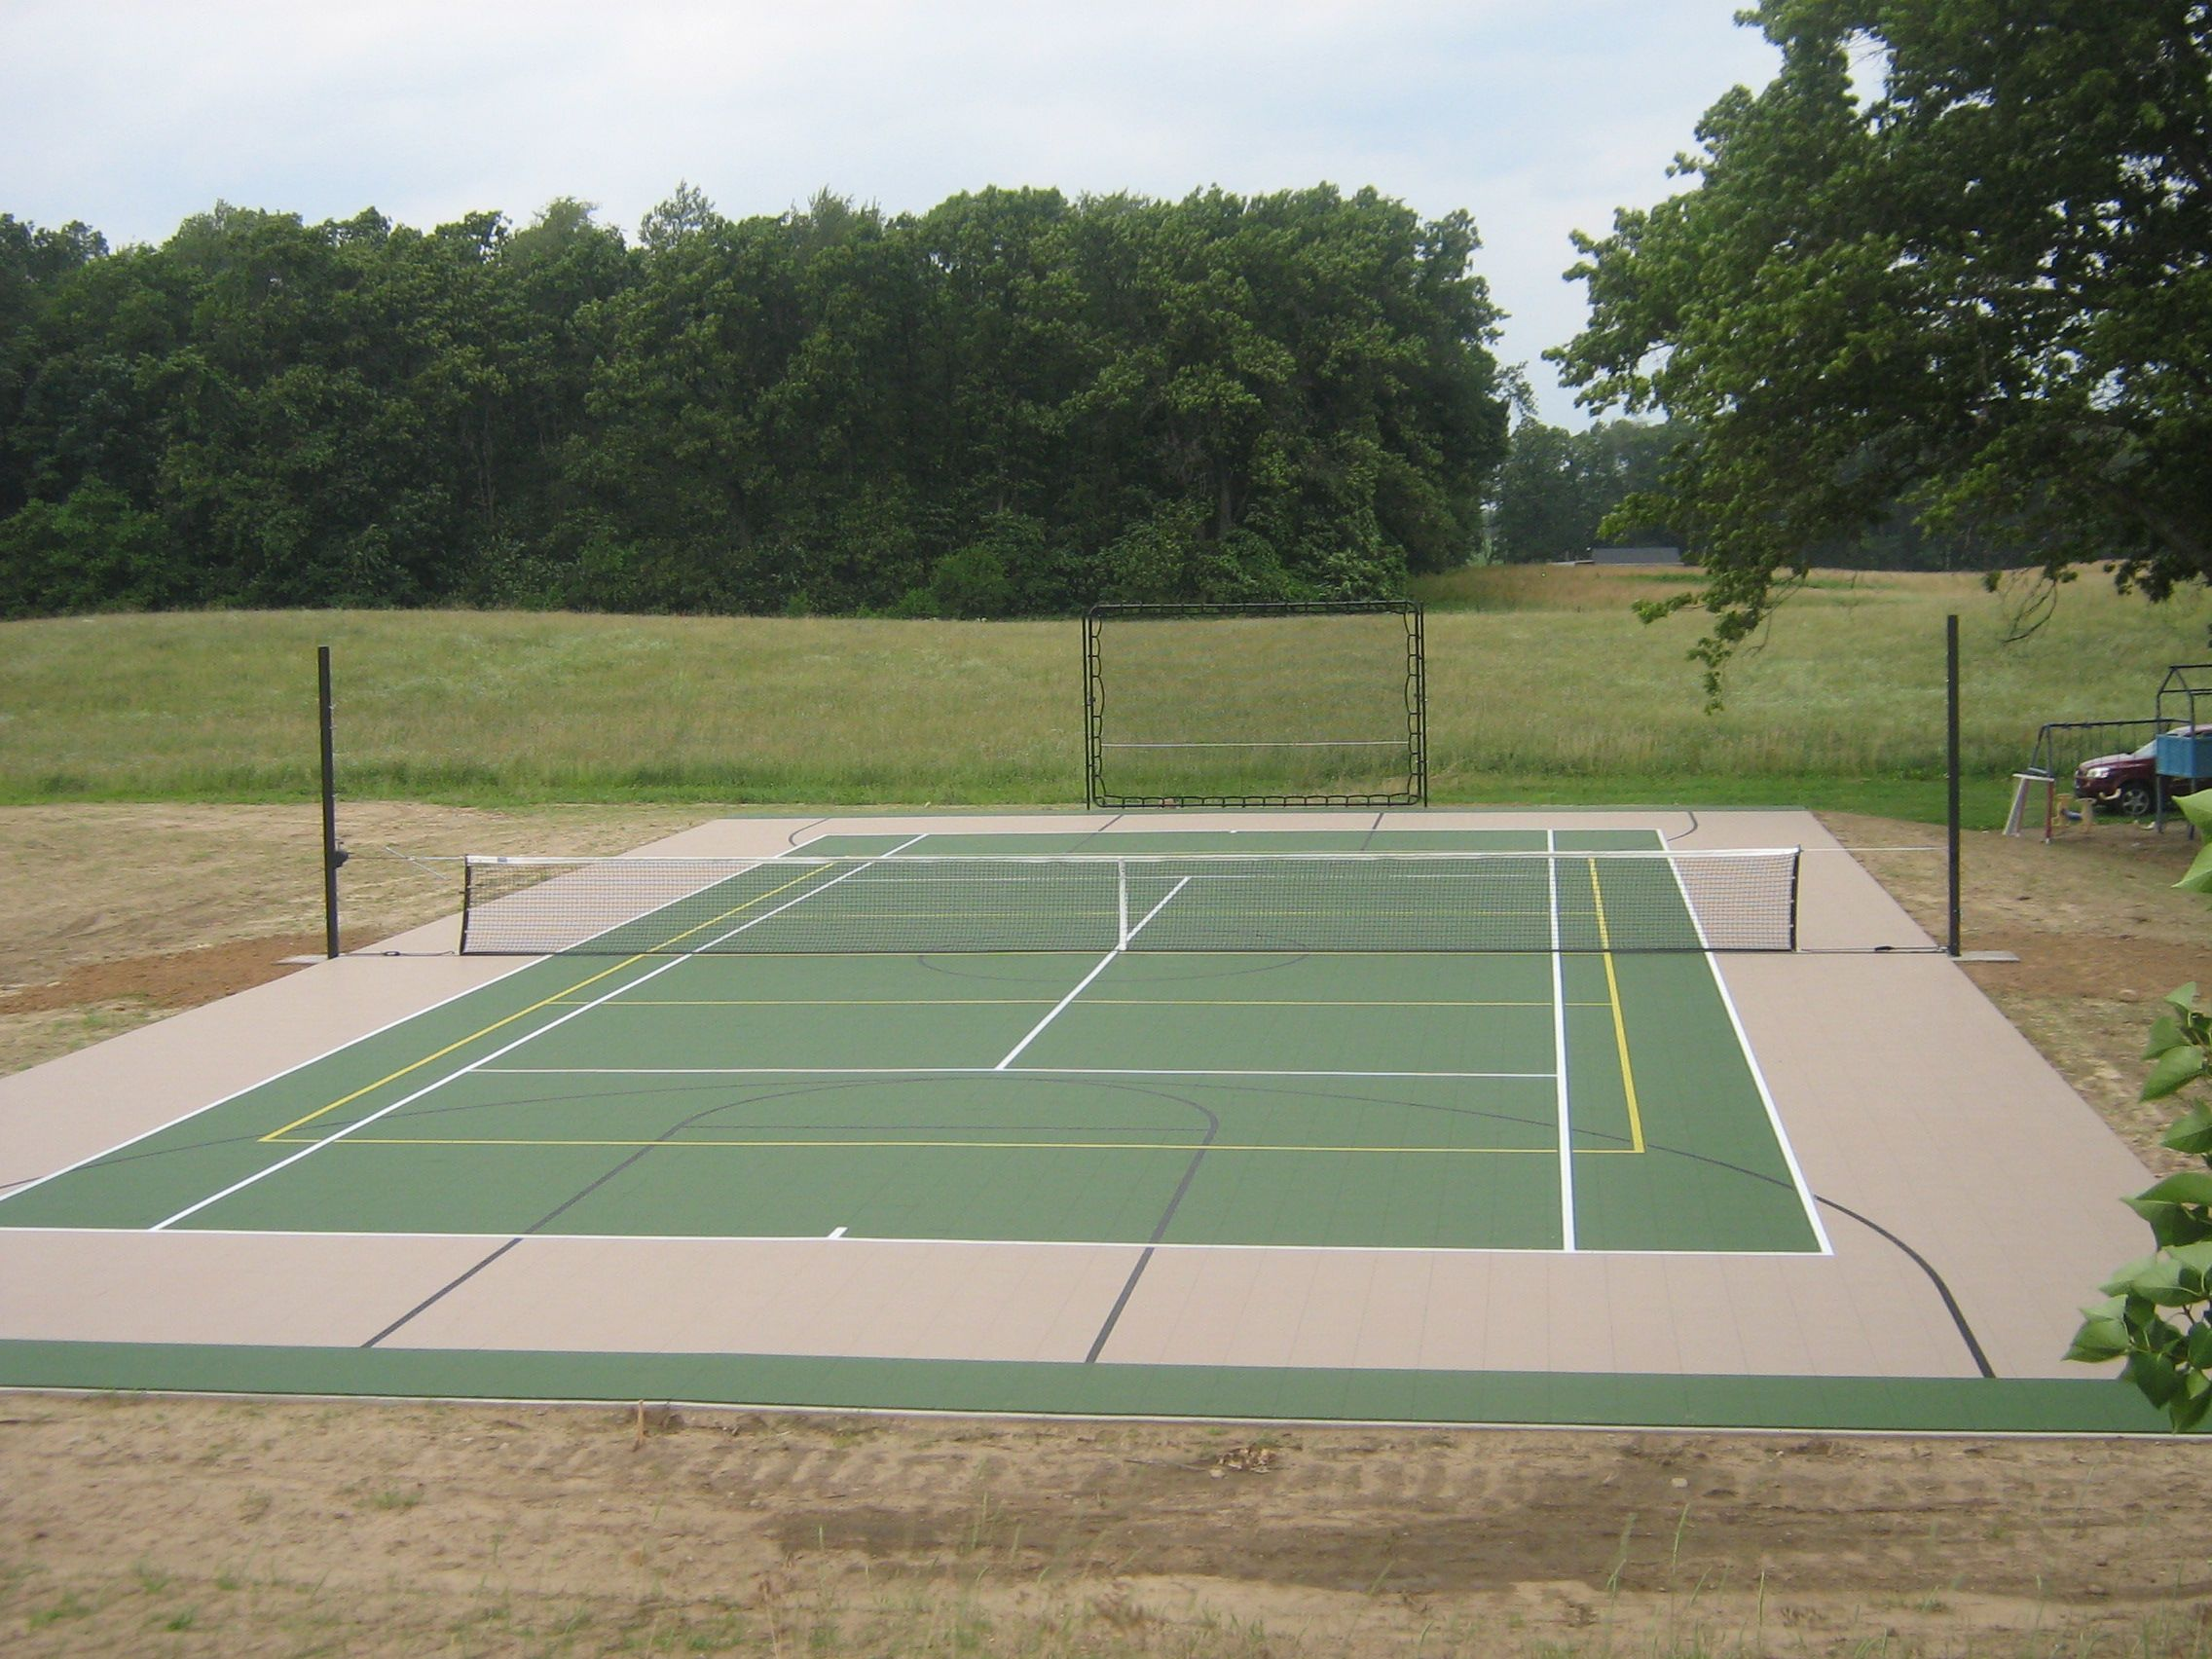 Tennis Court With Multi Sport Poles For Volleyball Tennis